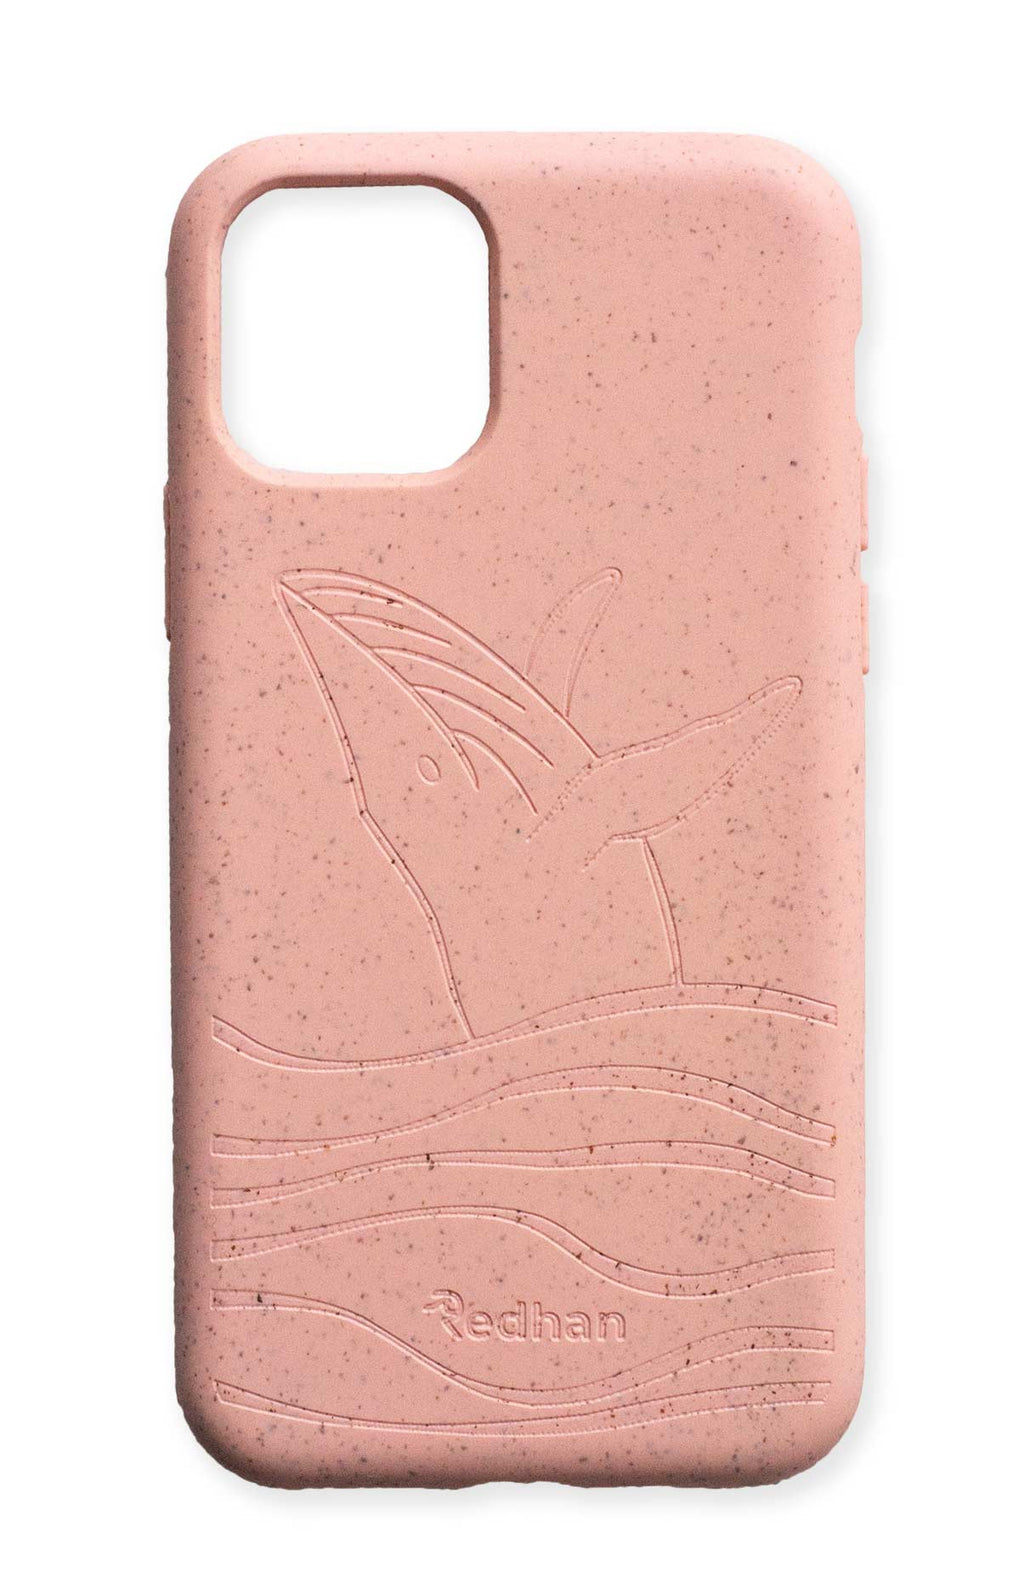 Biodegradable Eco-Frienldy Phone Case,iPhone 11 Pro Pink Phone Case